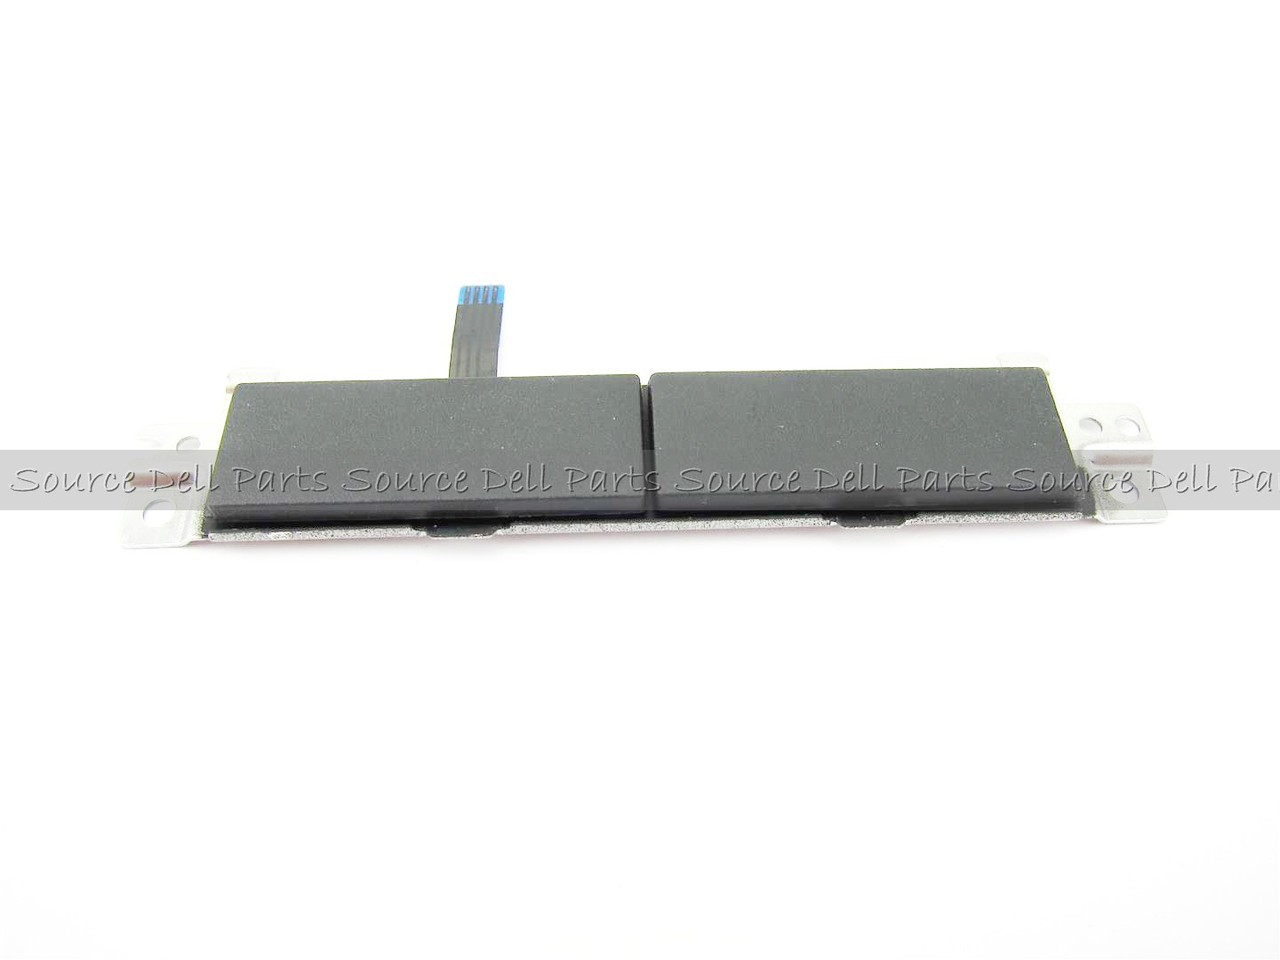 Dell Latitude E6330 Touchpad Mouse Buttons - A12132